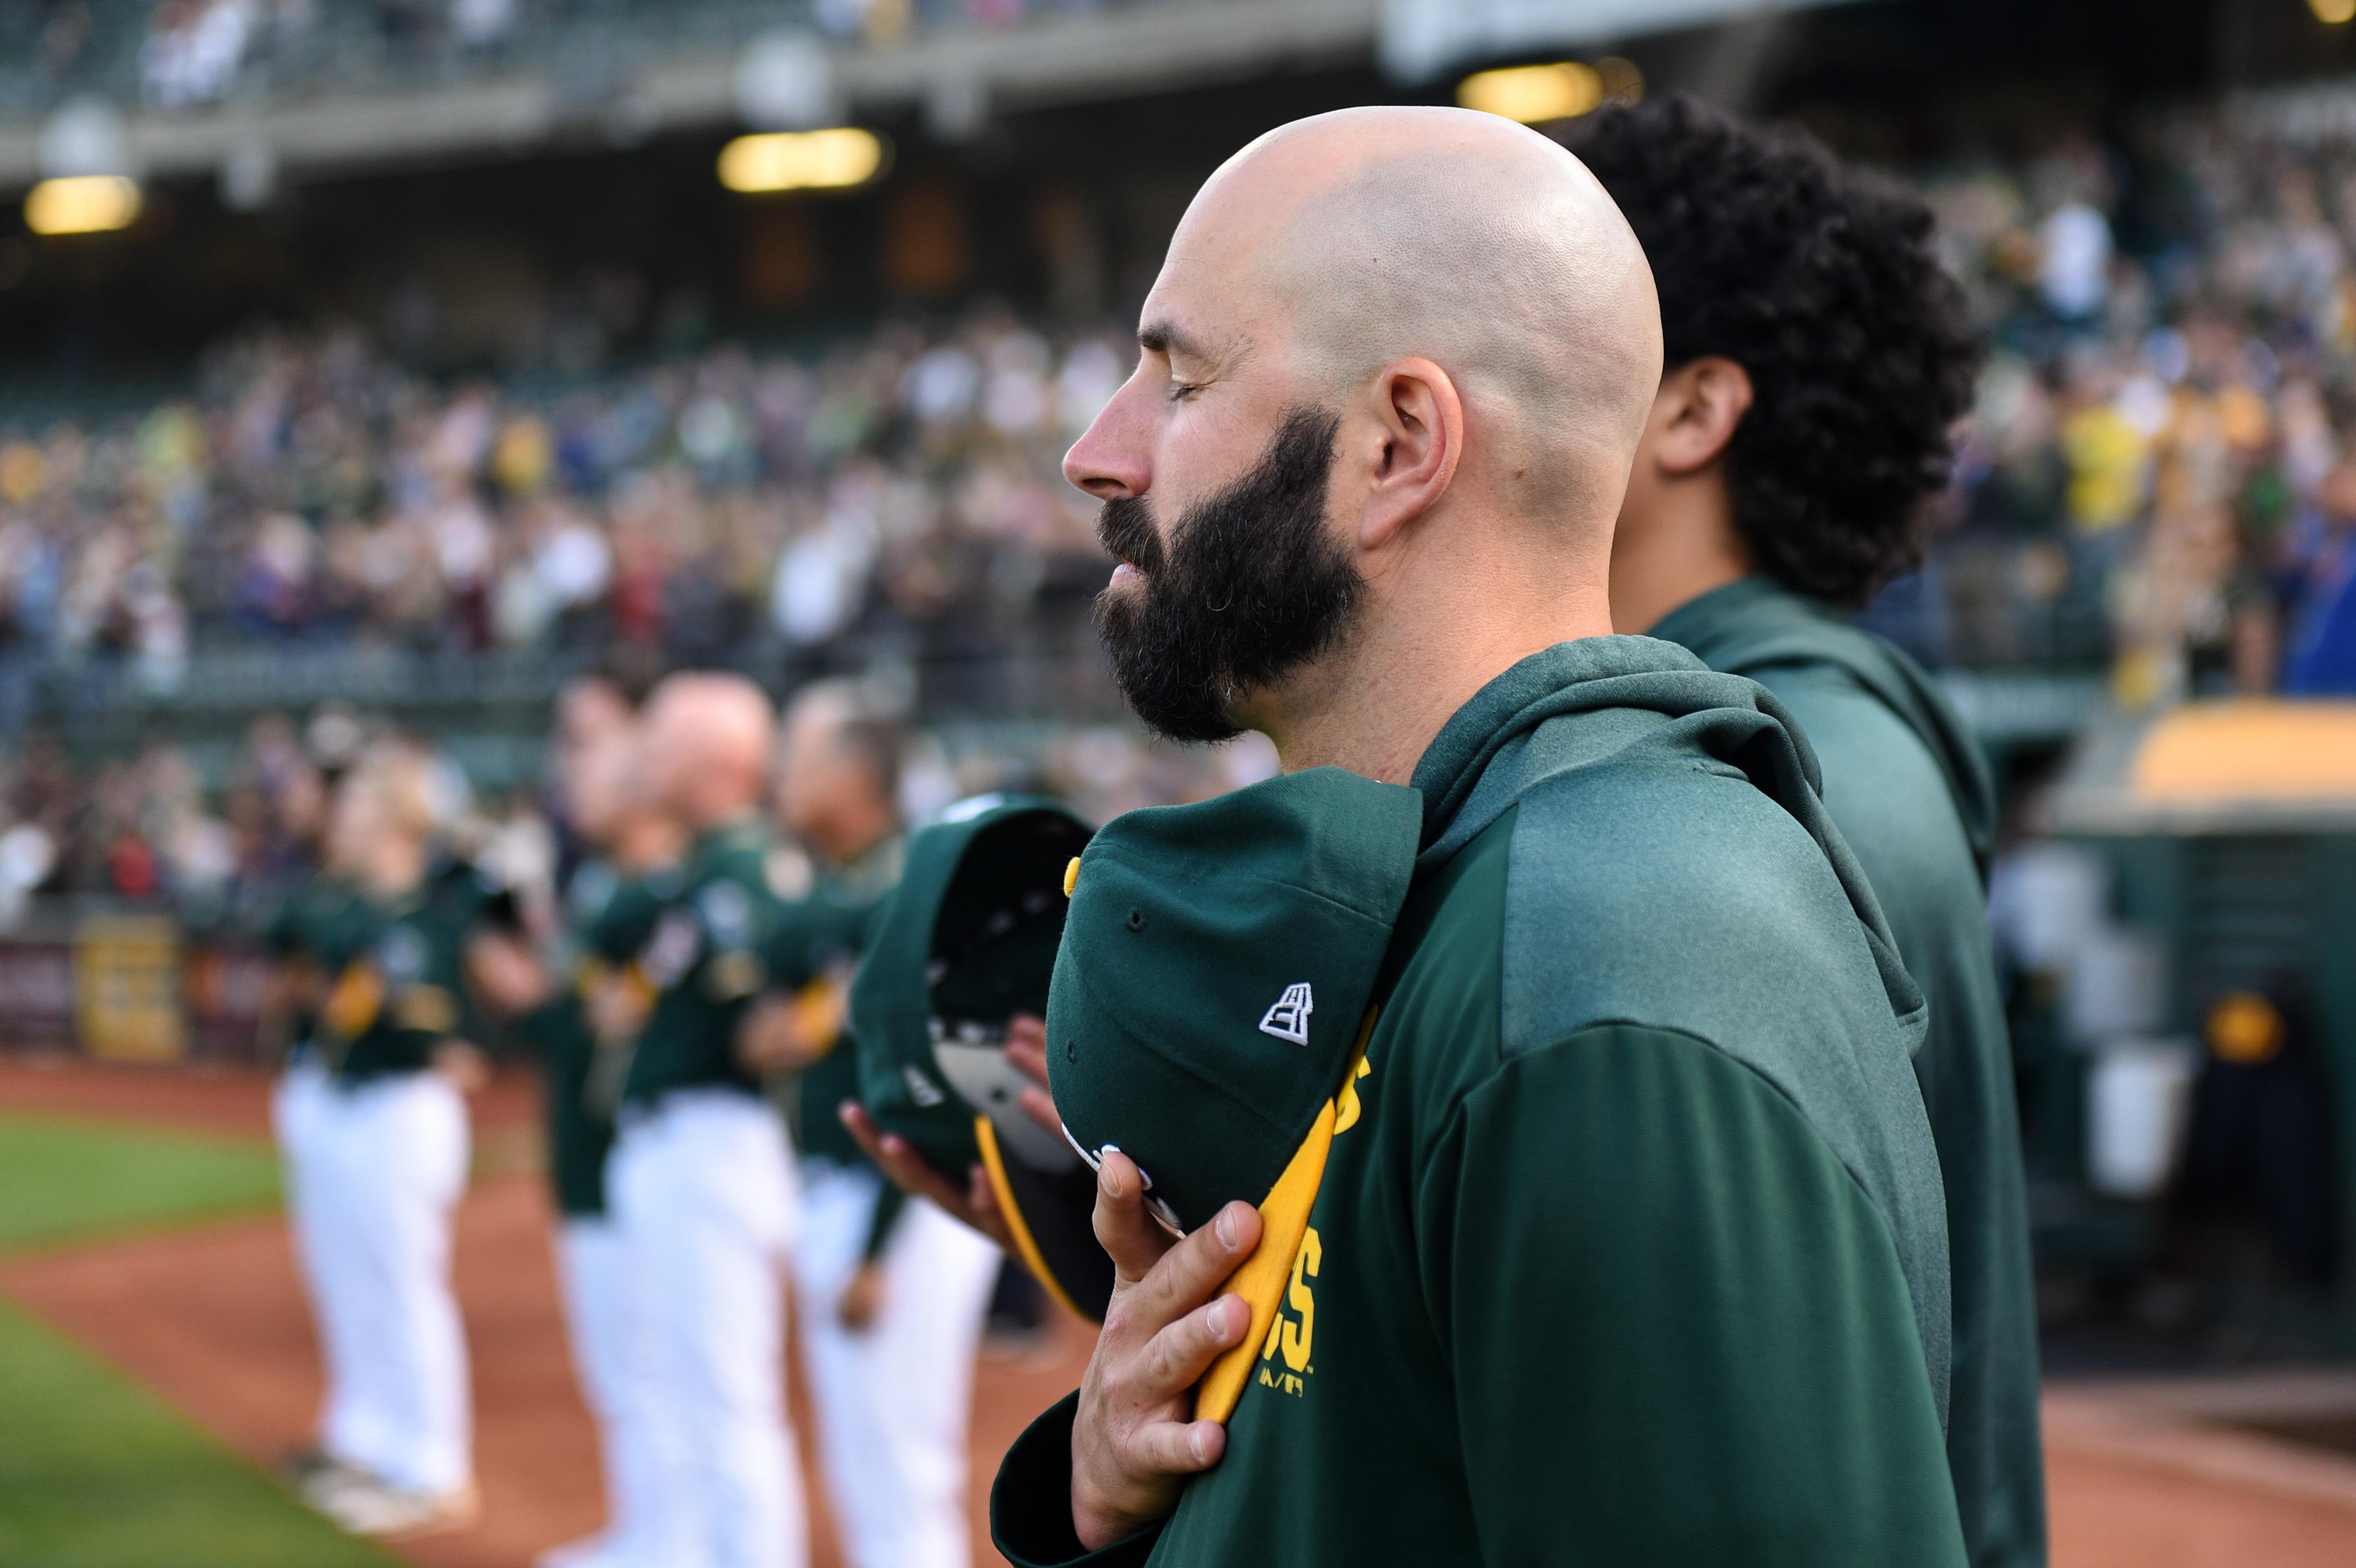 Mlb Is Mike Fiers A Snitch Depends On Who You Ask